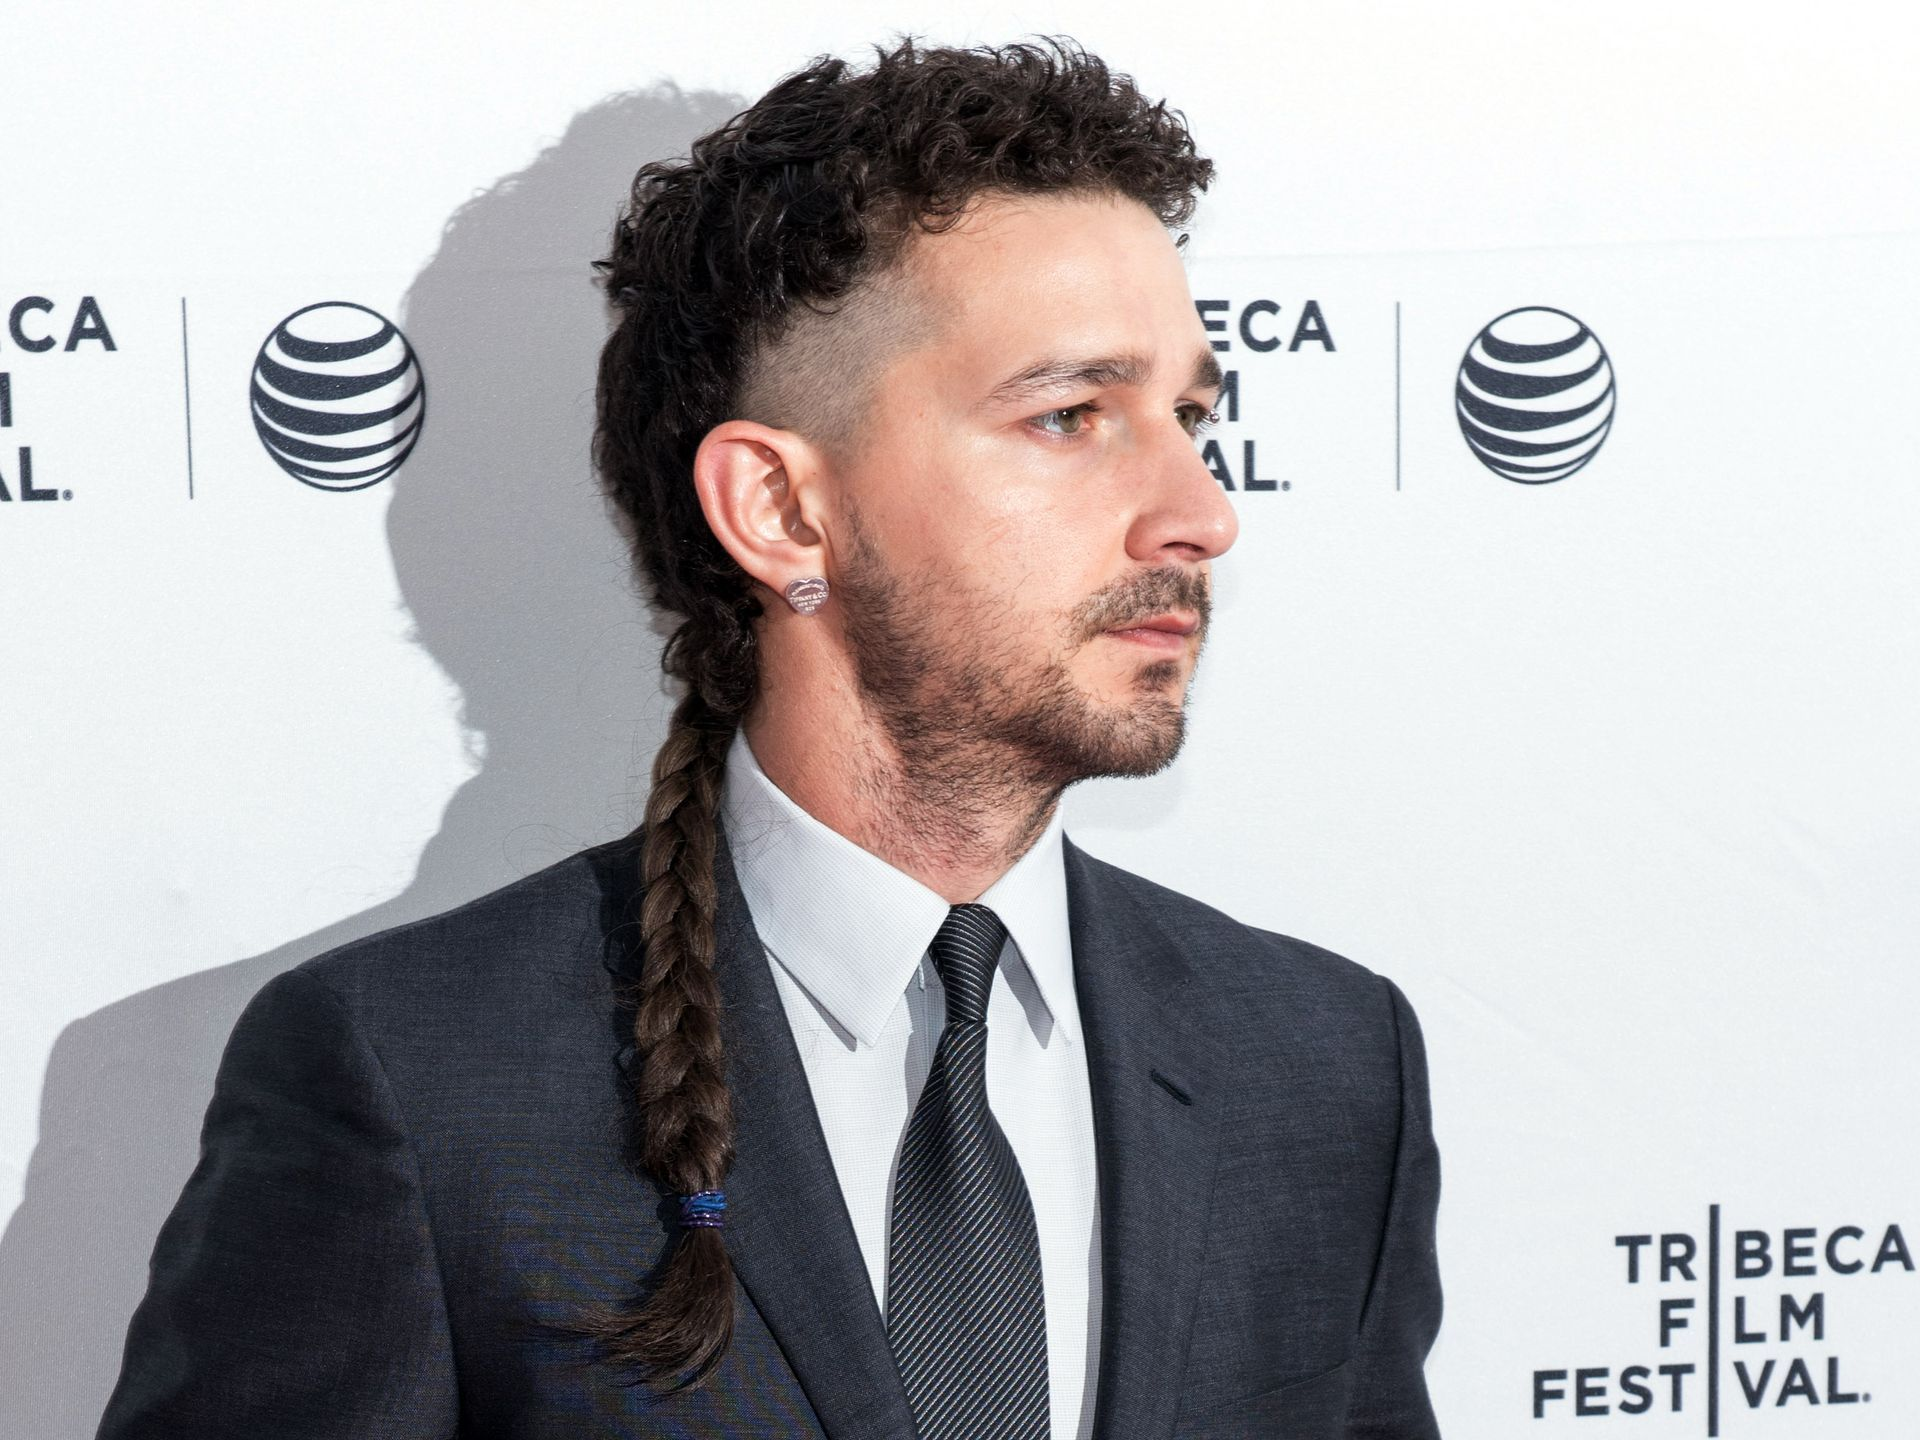 It has to be said Shia LaBeouf's look is just not working